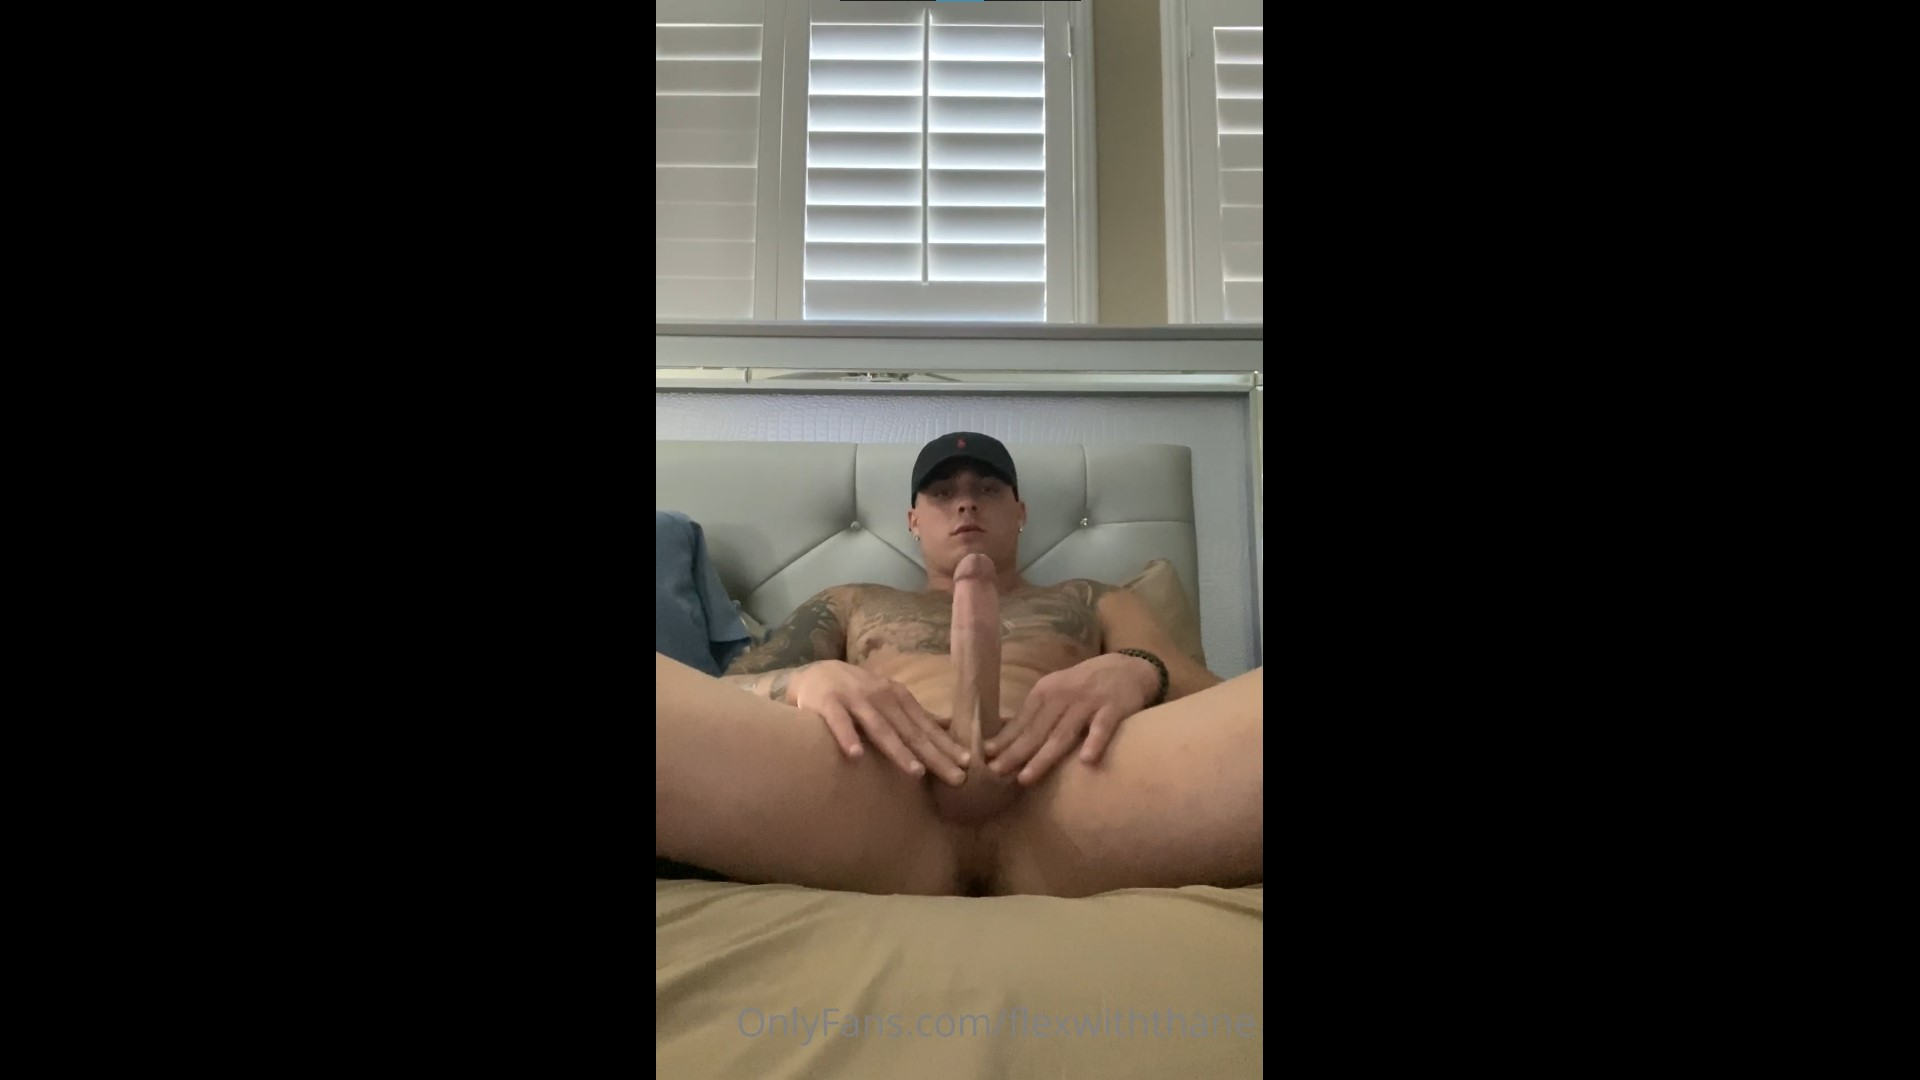 Jerking my cock in bed - Thane Wadams(FlexWithThane)